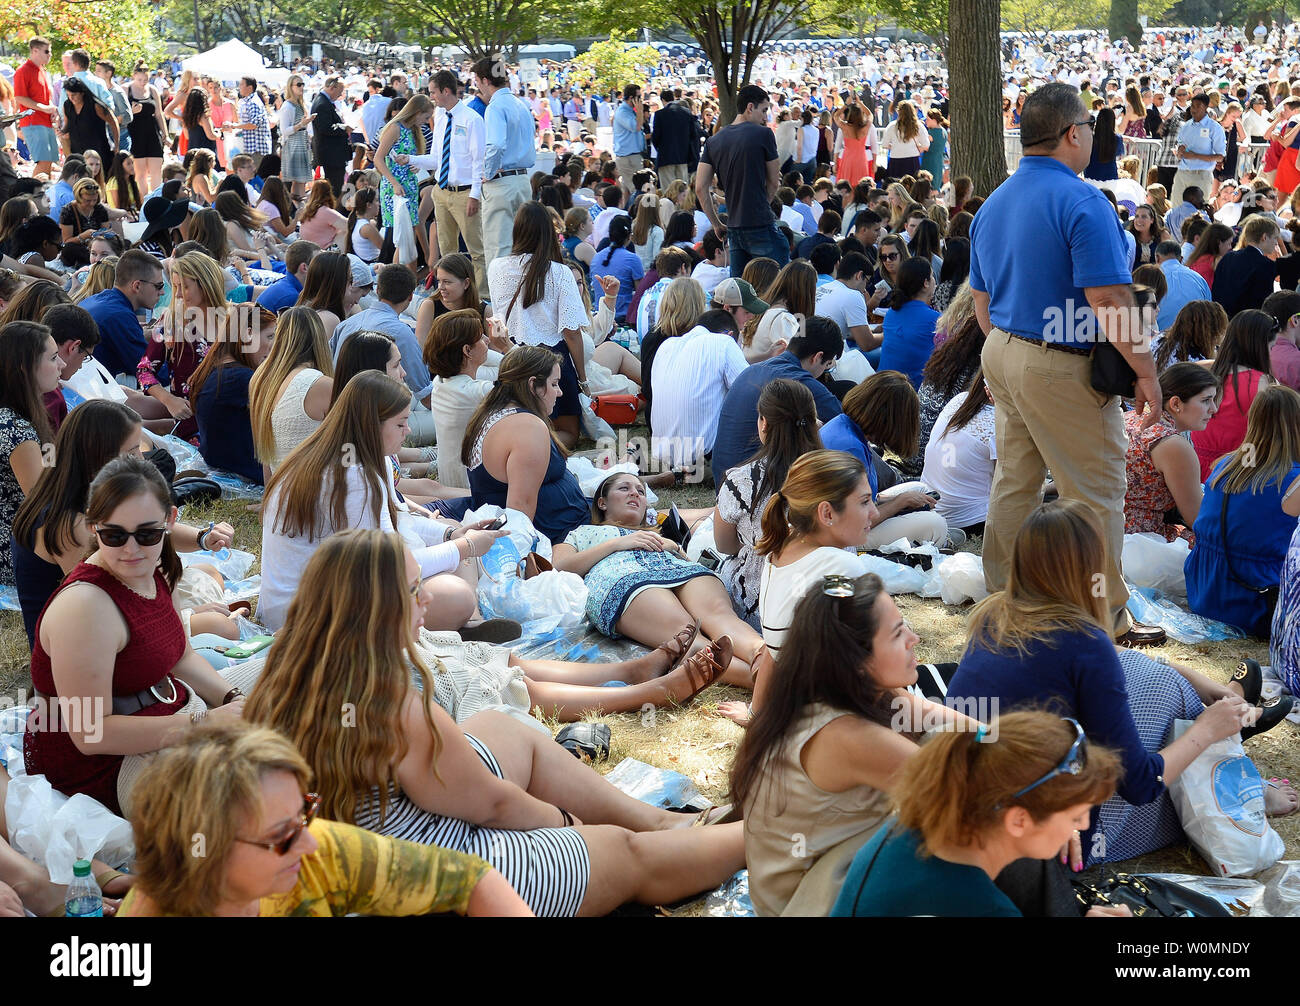 Pilgrims wait on the lawn at the Basilica of the National Shrine of the Immaculate Conception before Pope Francis delivers the Canonization Mass of Blessed Junipero Serra in Washington, D.C., September 23, 2015. The Basilica is the largest Roman Catholic church in the United States. Photo by David Tulis/UPI Stock Photo